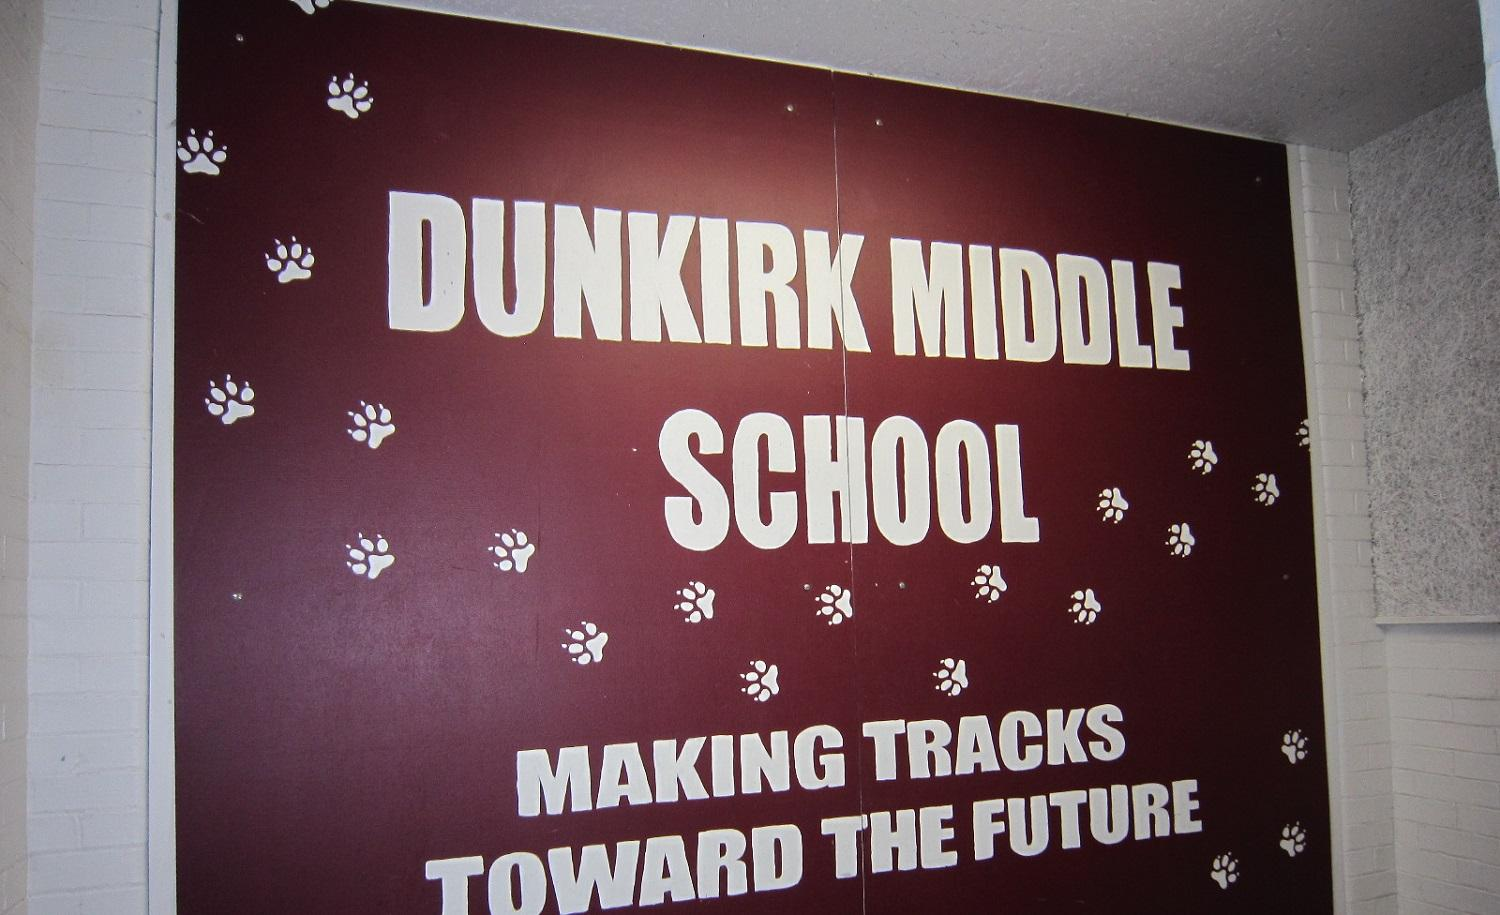 dunkirk middle school homework hotline